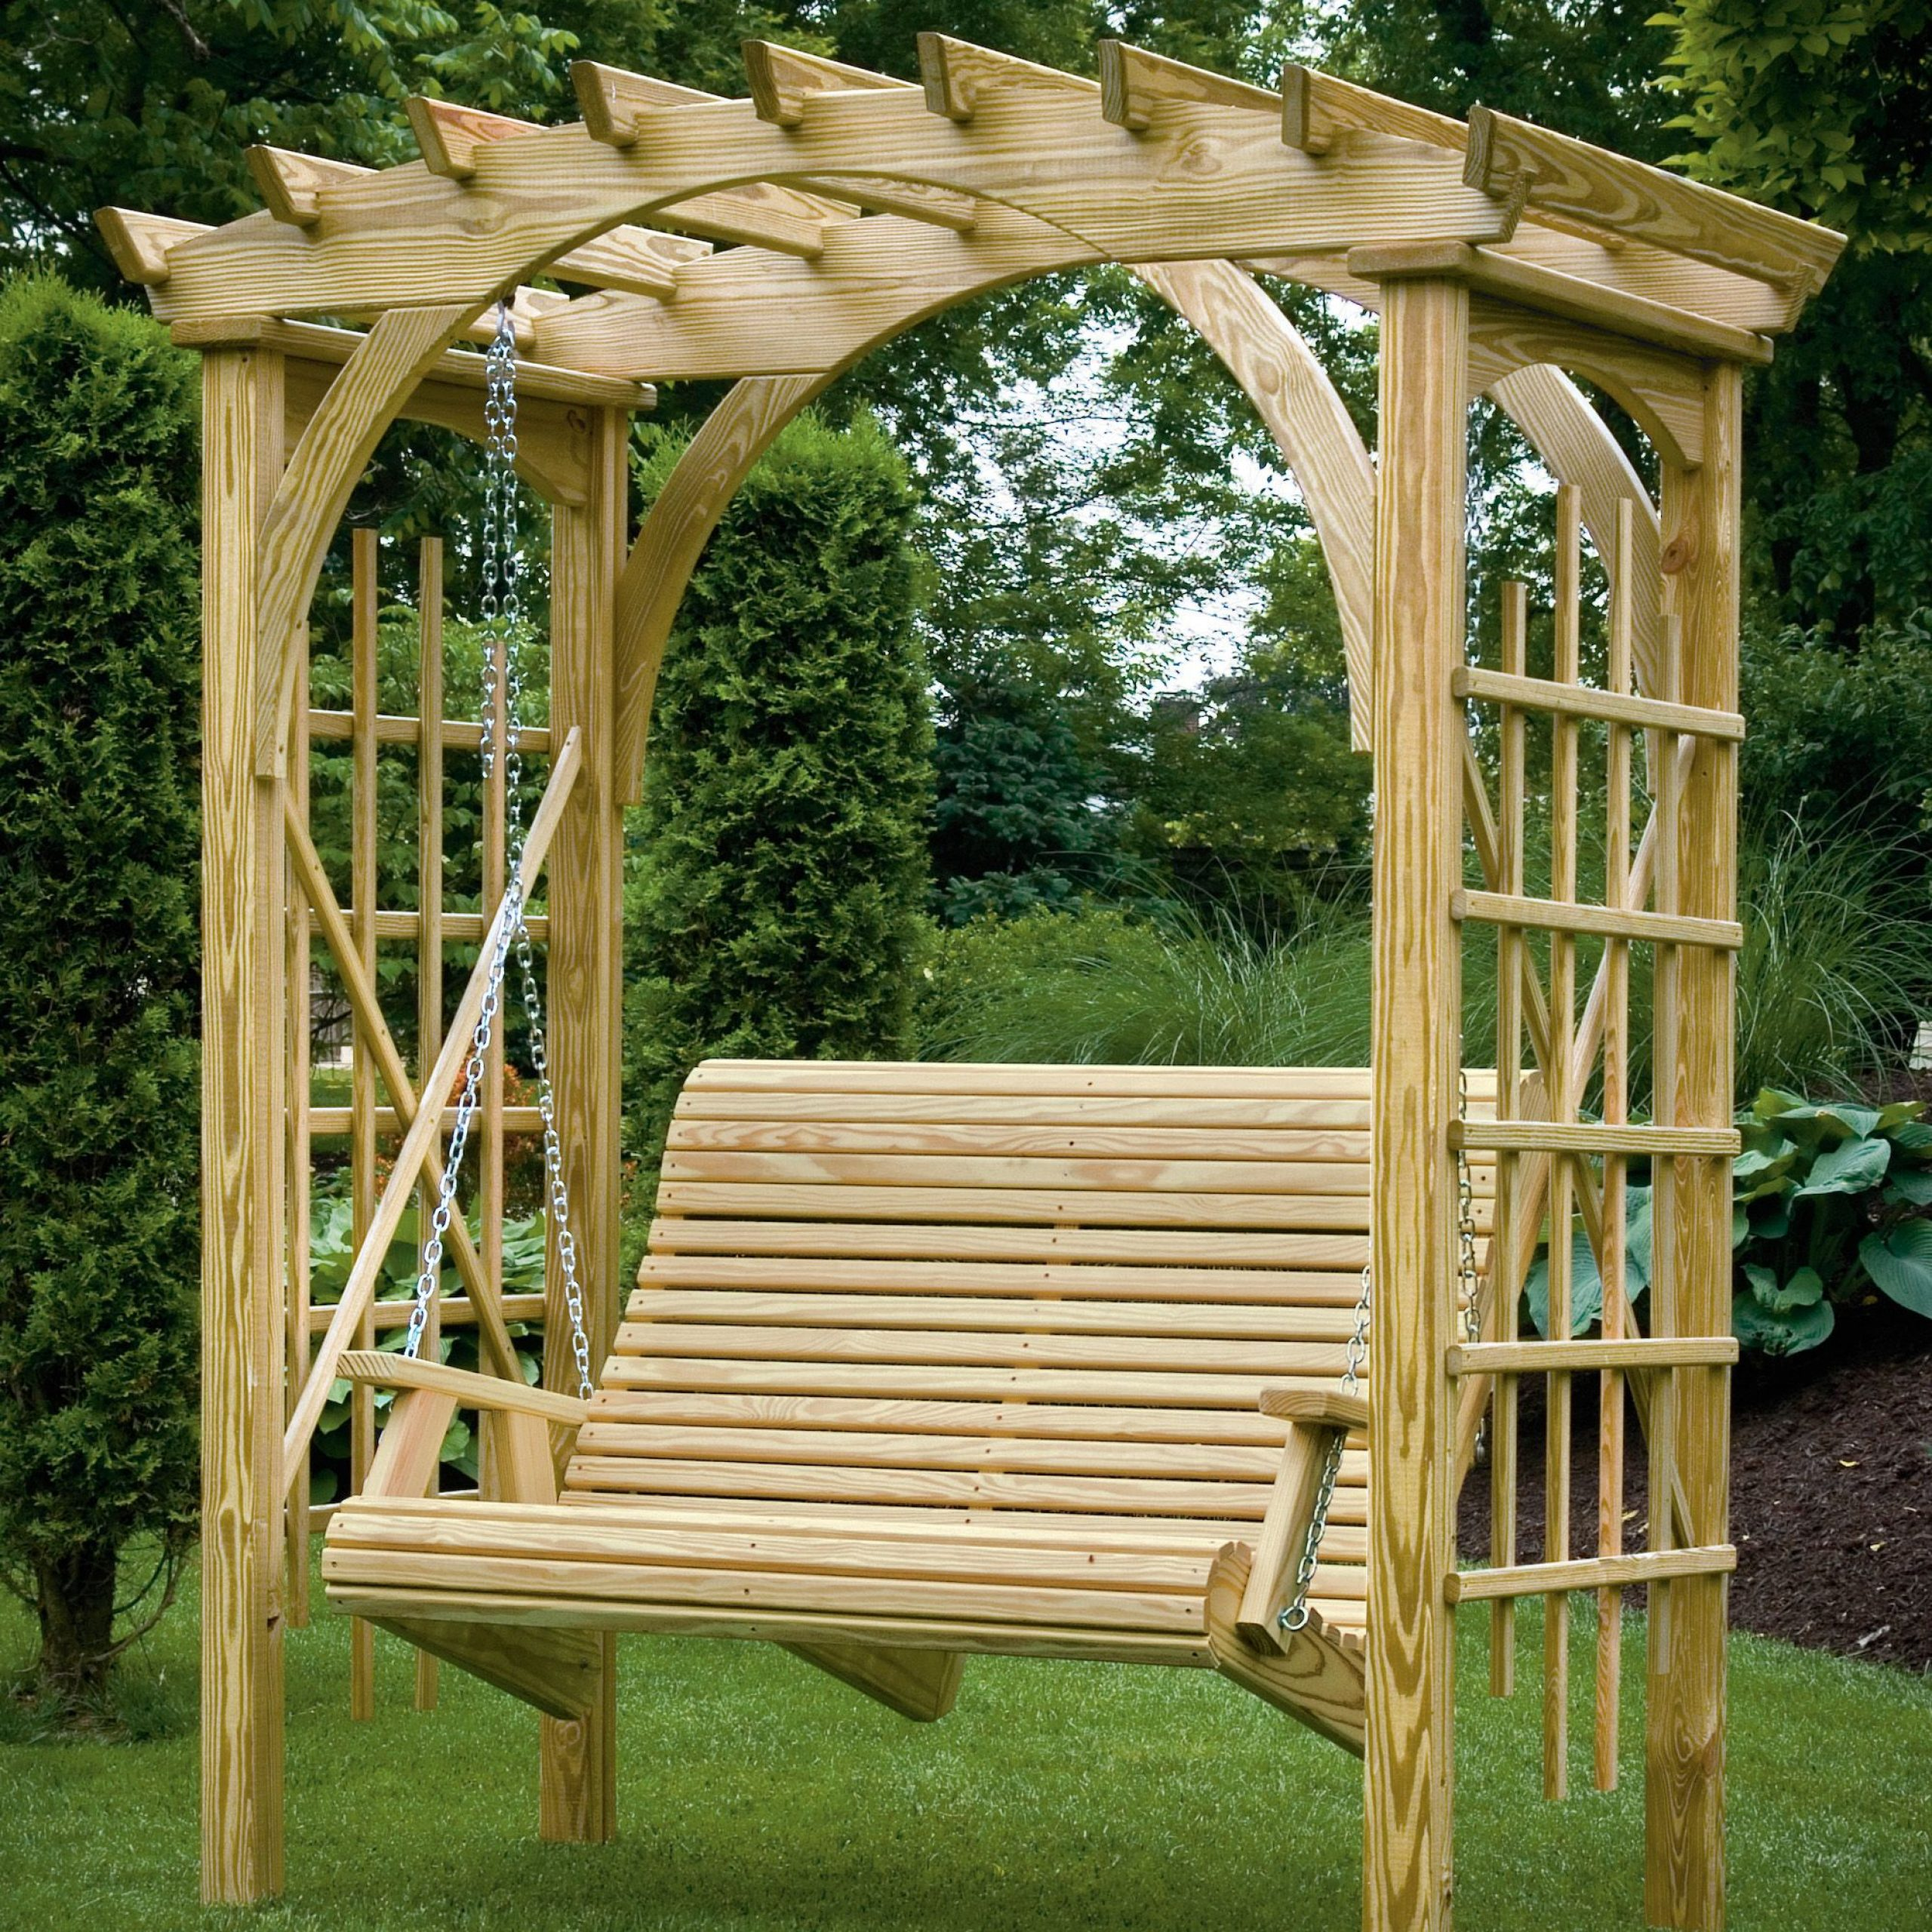 3' X 6' Roman Arch Arbor With Rollback 4' Hanging Swing With 3 Seat Pergola Swings (Photo 9 of 25)